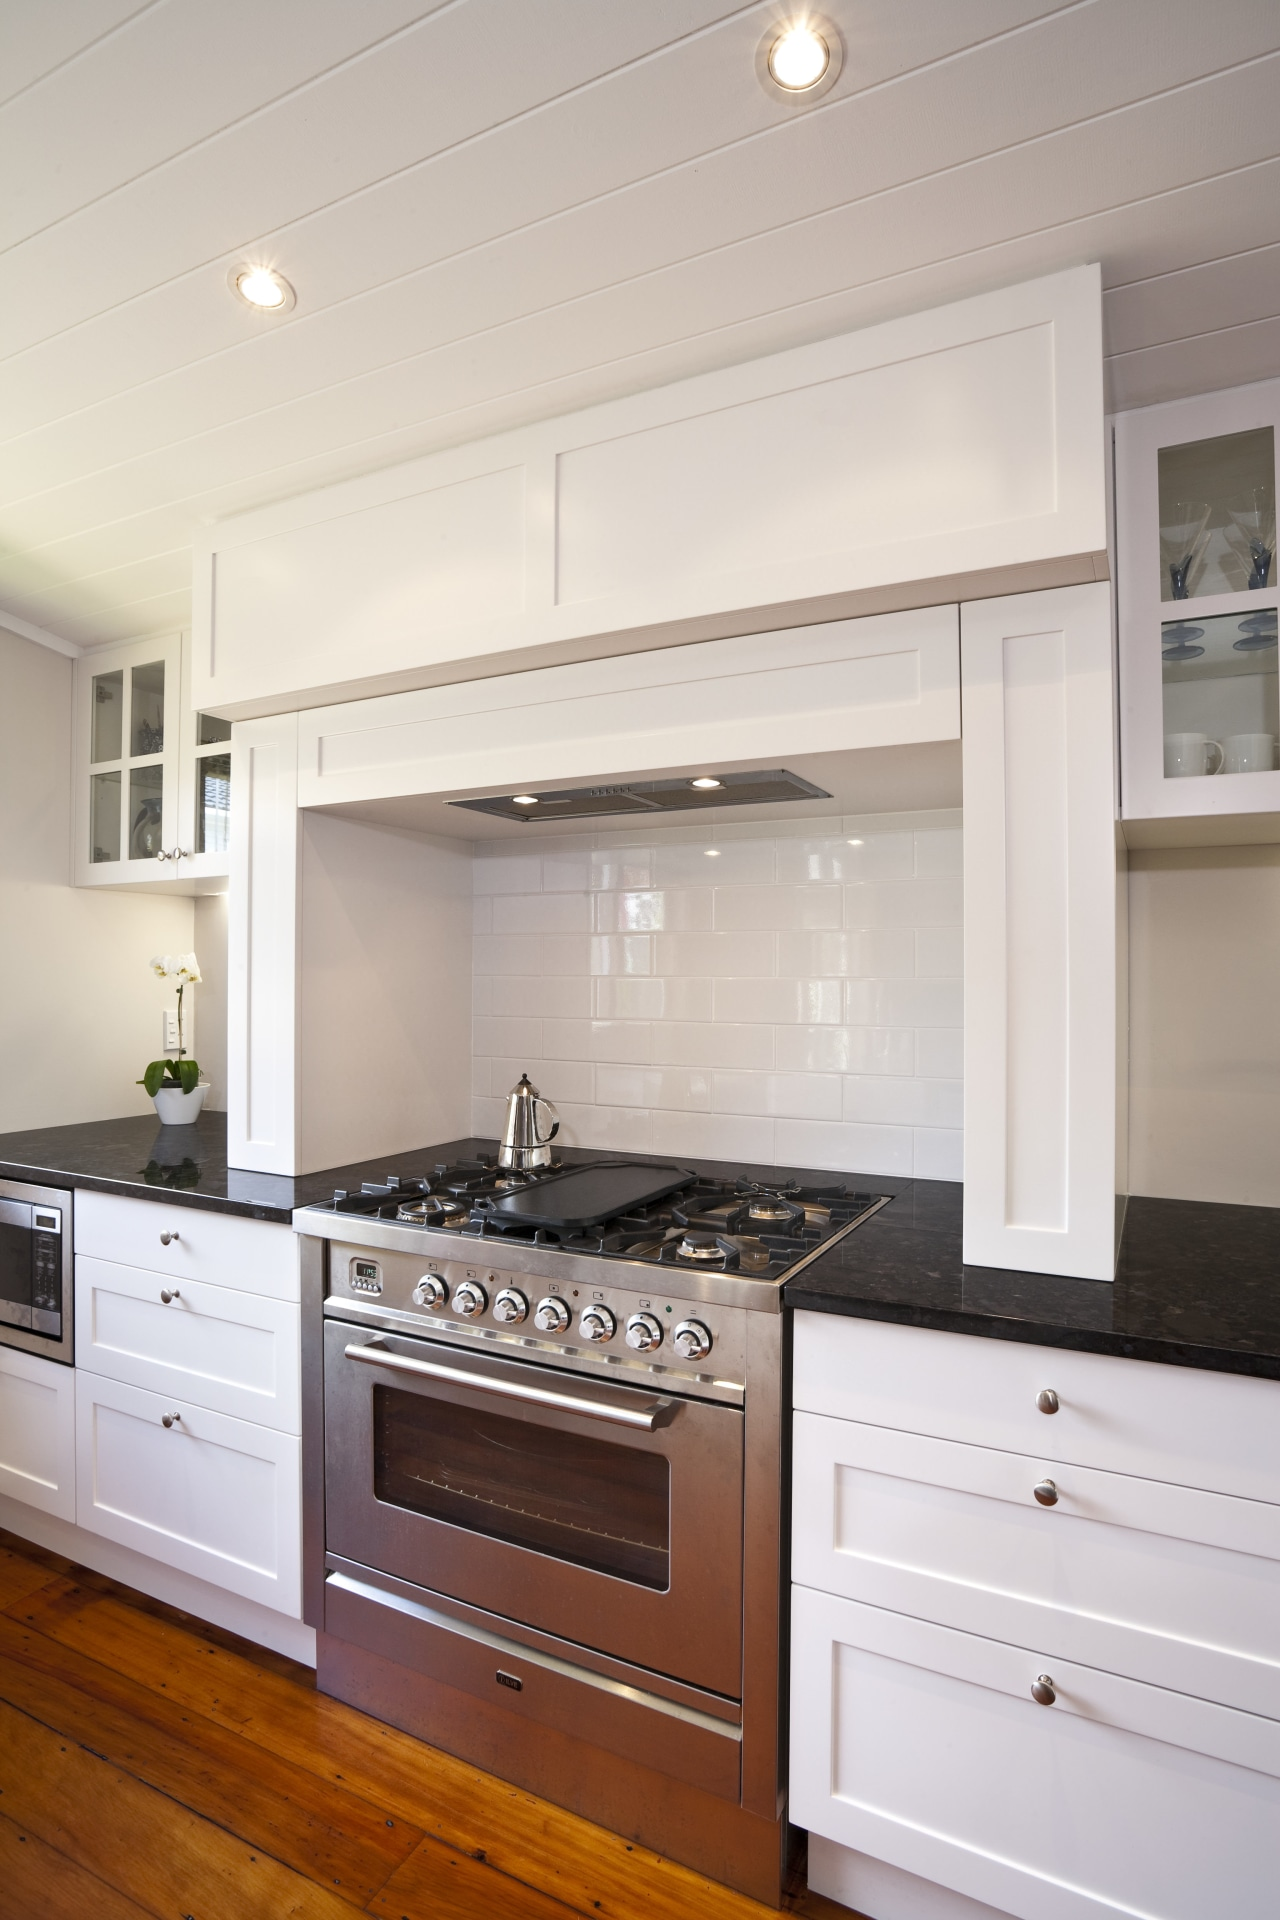 This new kitchen, by RH Cabinetmakers, features traditionally cabinetry, countertop, cuisine classique, floor, flooring, hardwood, home, home appliance, interior design, kitchen, kitchen appliance, kitchen stove, major appliance, oven, room, wood flooring, gray